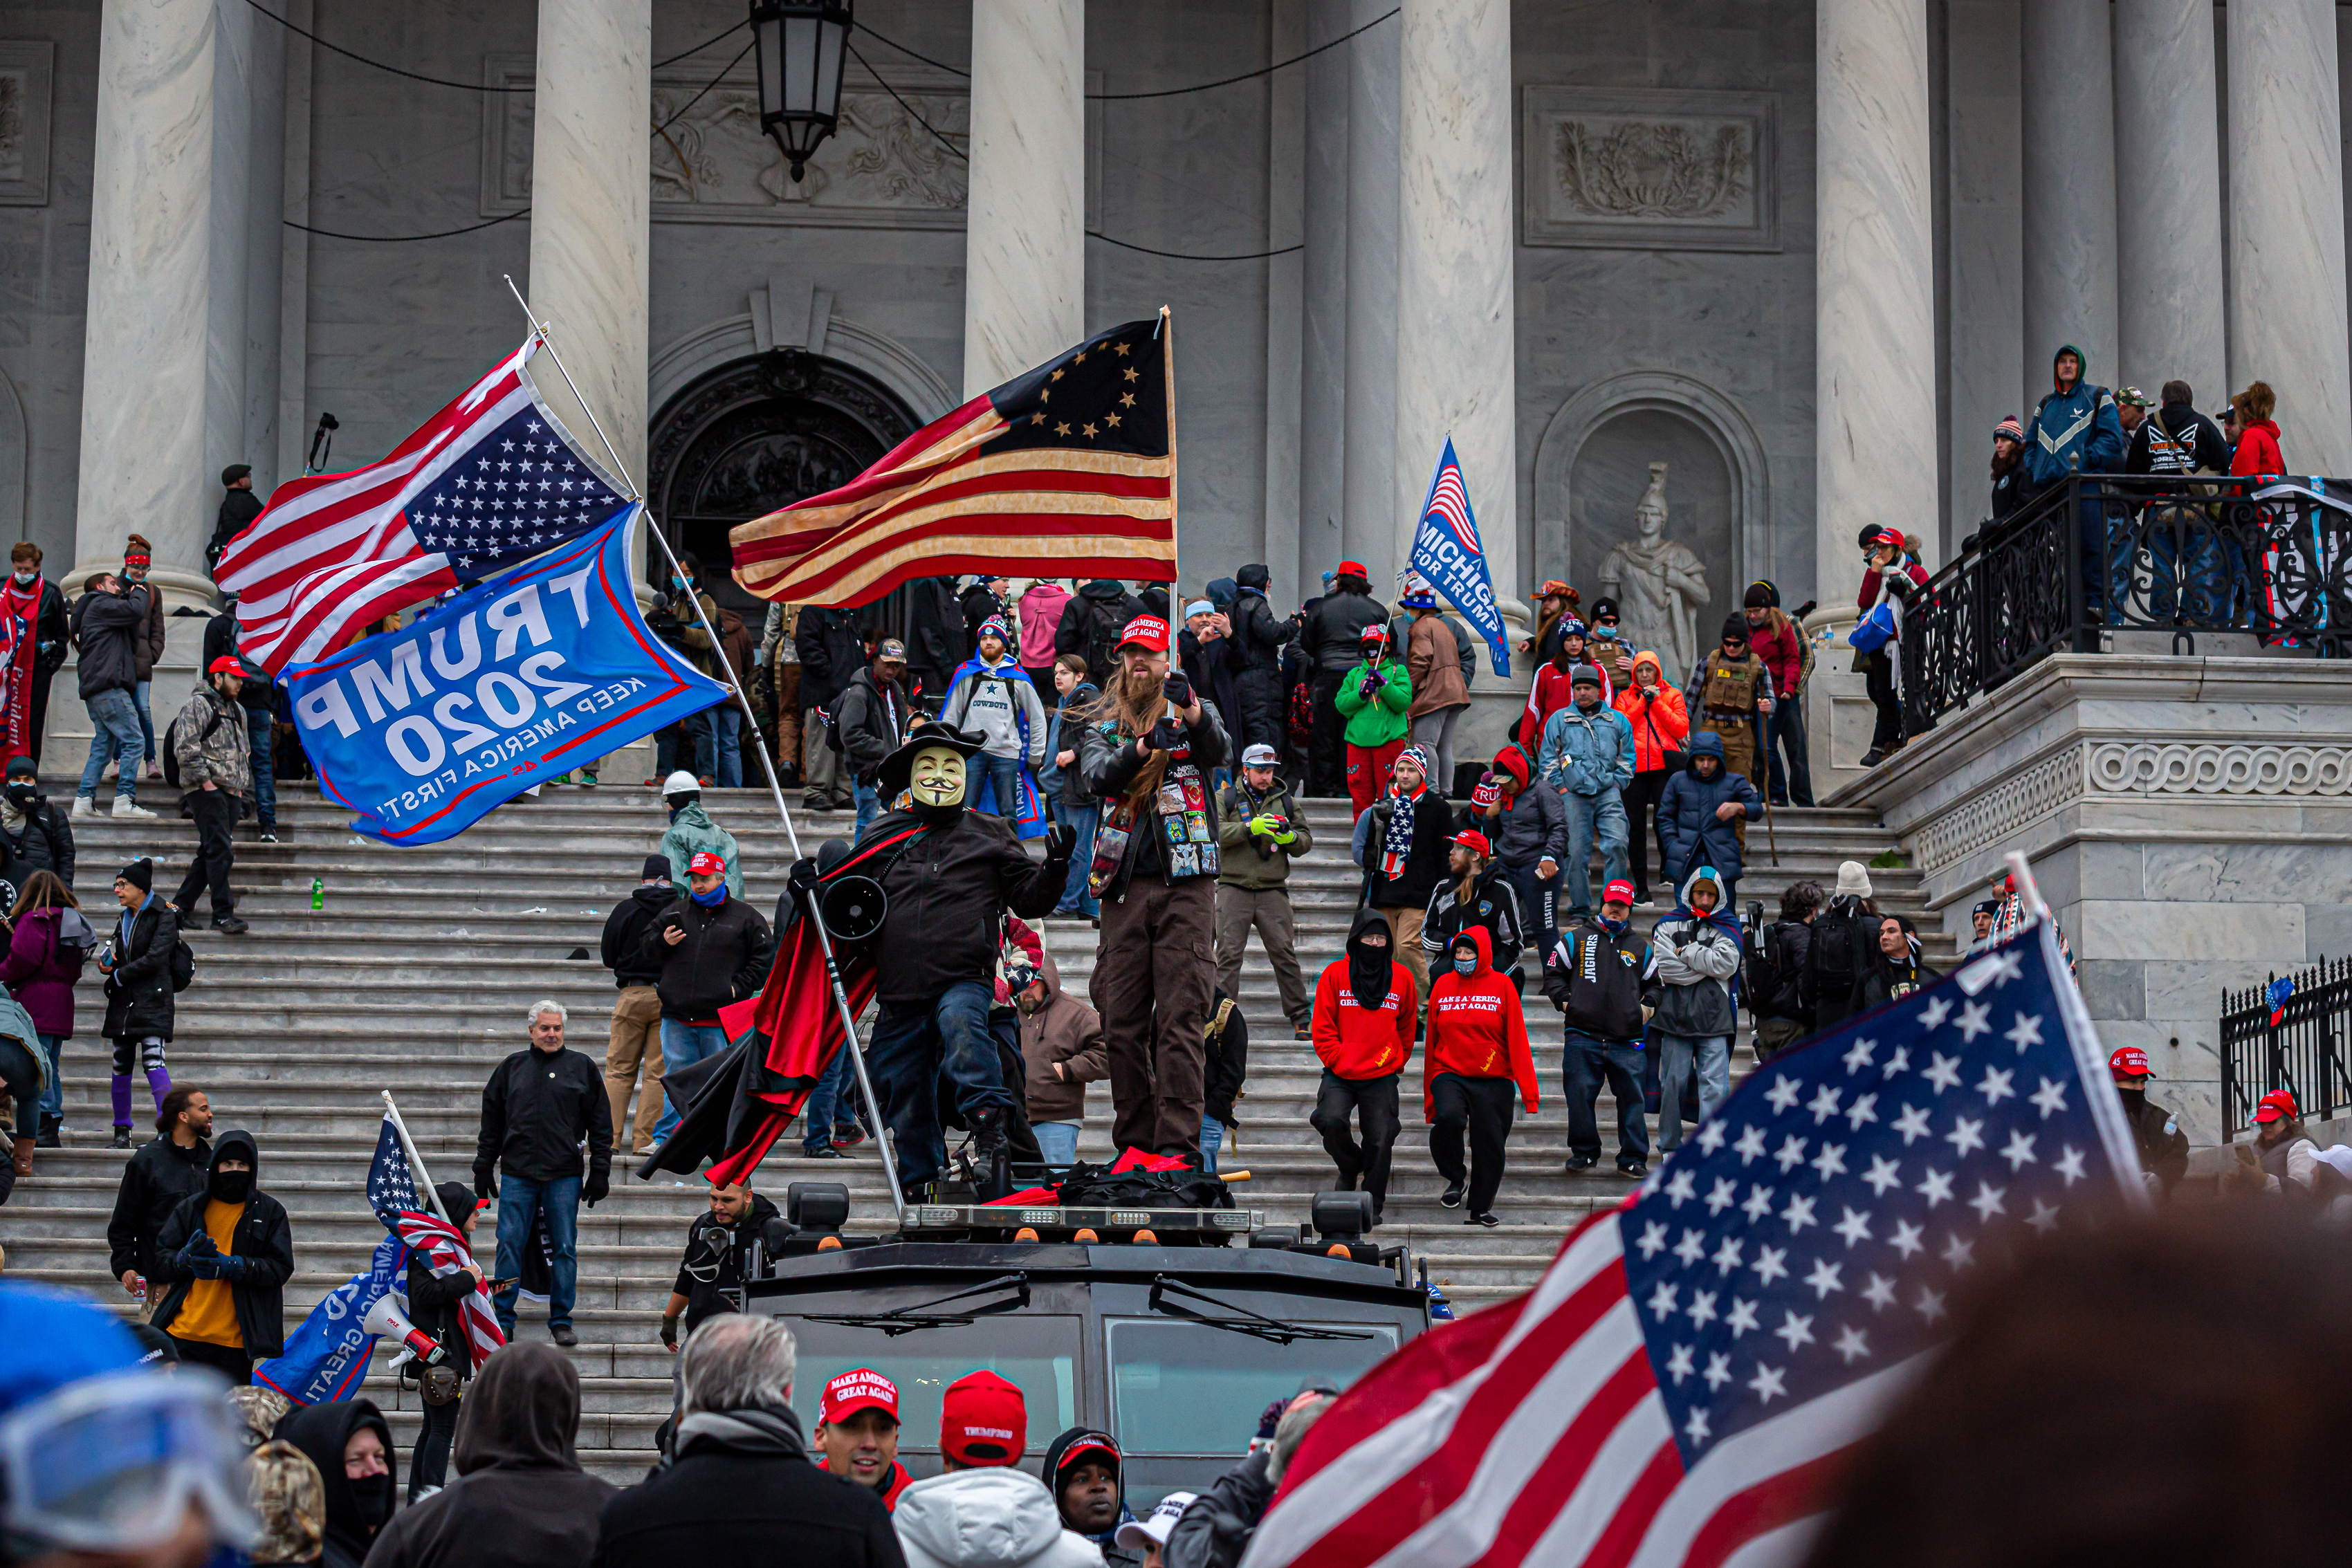 On January 6, 2021, Pro-Trump supporters and far-right forces flooded Washington DC to protest Trump's election loss. Hundreds breached the U.S. Capitol Building, aproximately 13 were arrested and one protester was killed. (Photo by Michael Nigro/Sipa USA)No Use UK. No Use Germany.